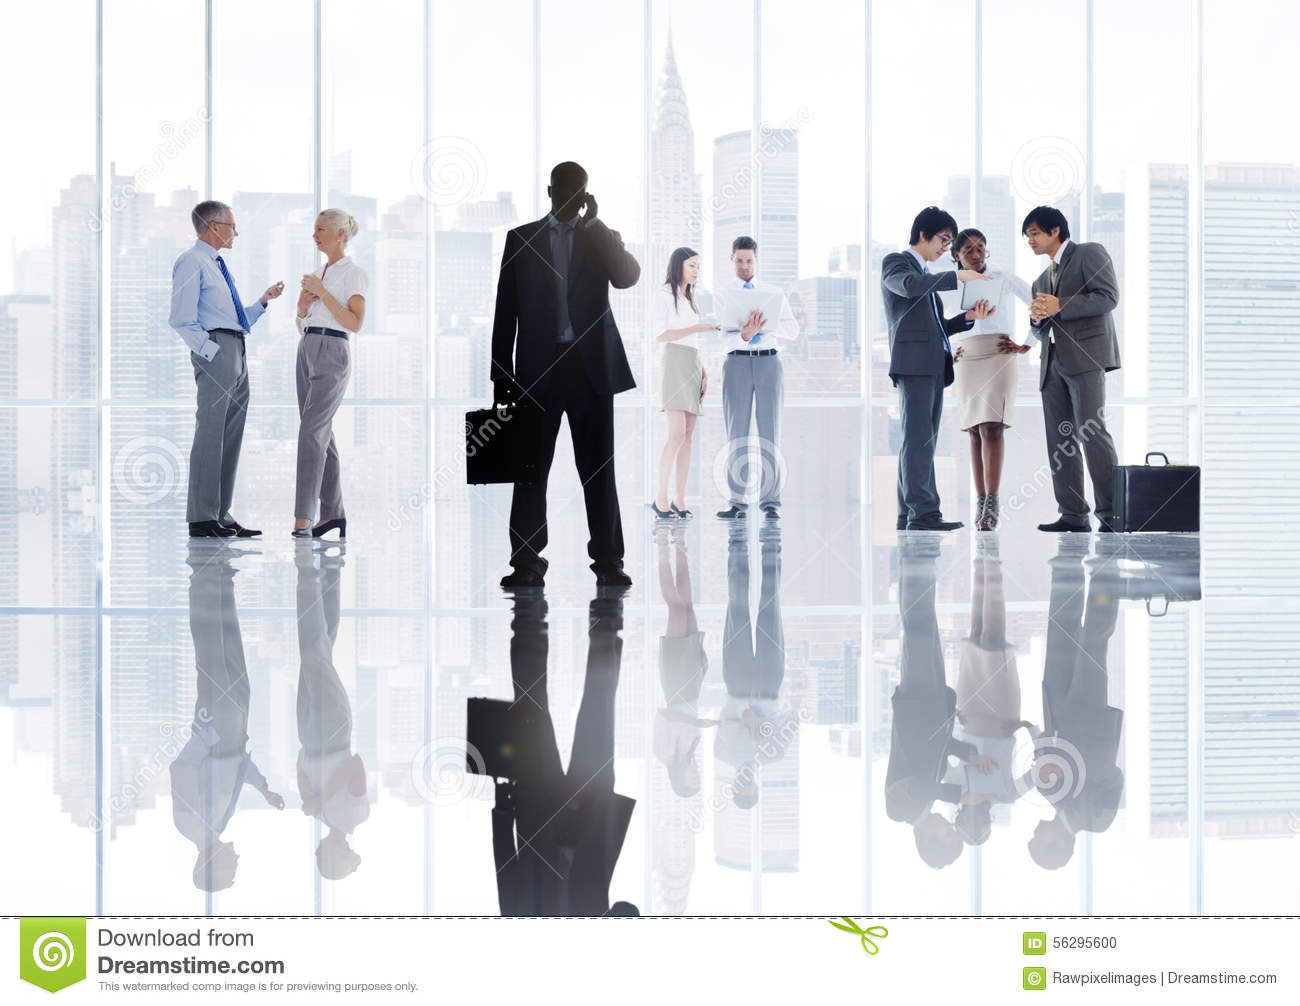 """multicultural business communication Intercultural communication, sometimes called """"cross cultural communication,"""" is one of the major concepts in international business that seeks to identify, understand and adapt to communication disparities across different cultures."""